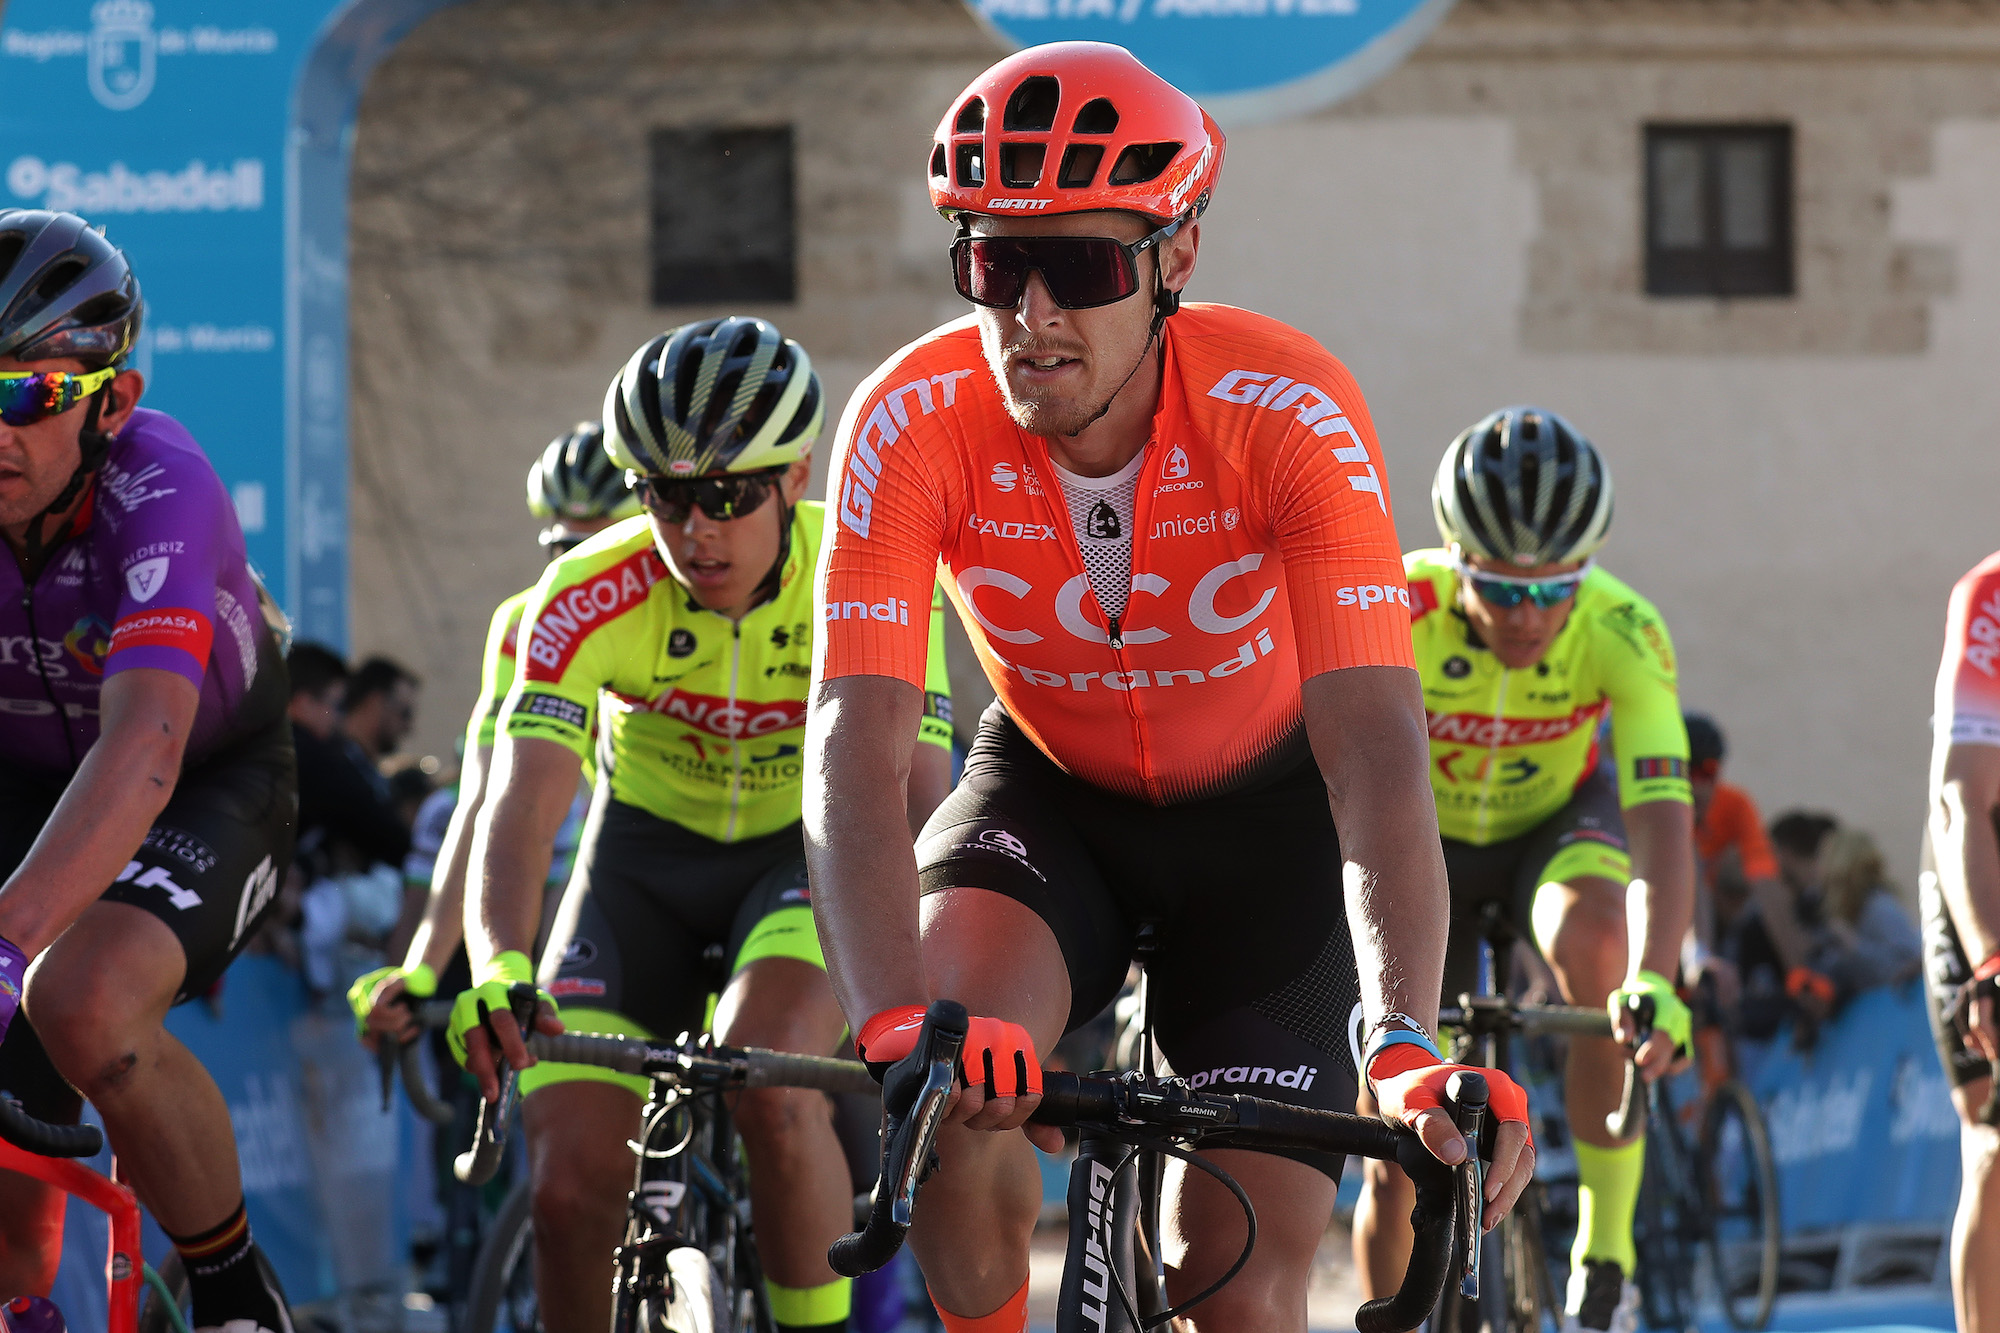 'The descent was far from safe': Matteo Trentin criticises Vuelta a Murcia finish - Cycling Weekly